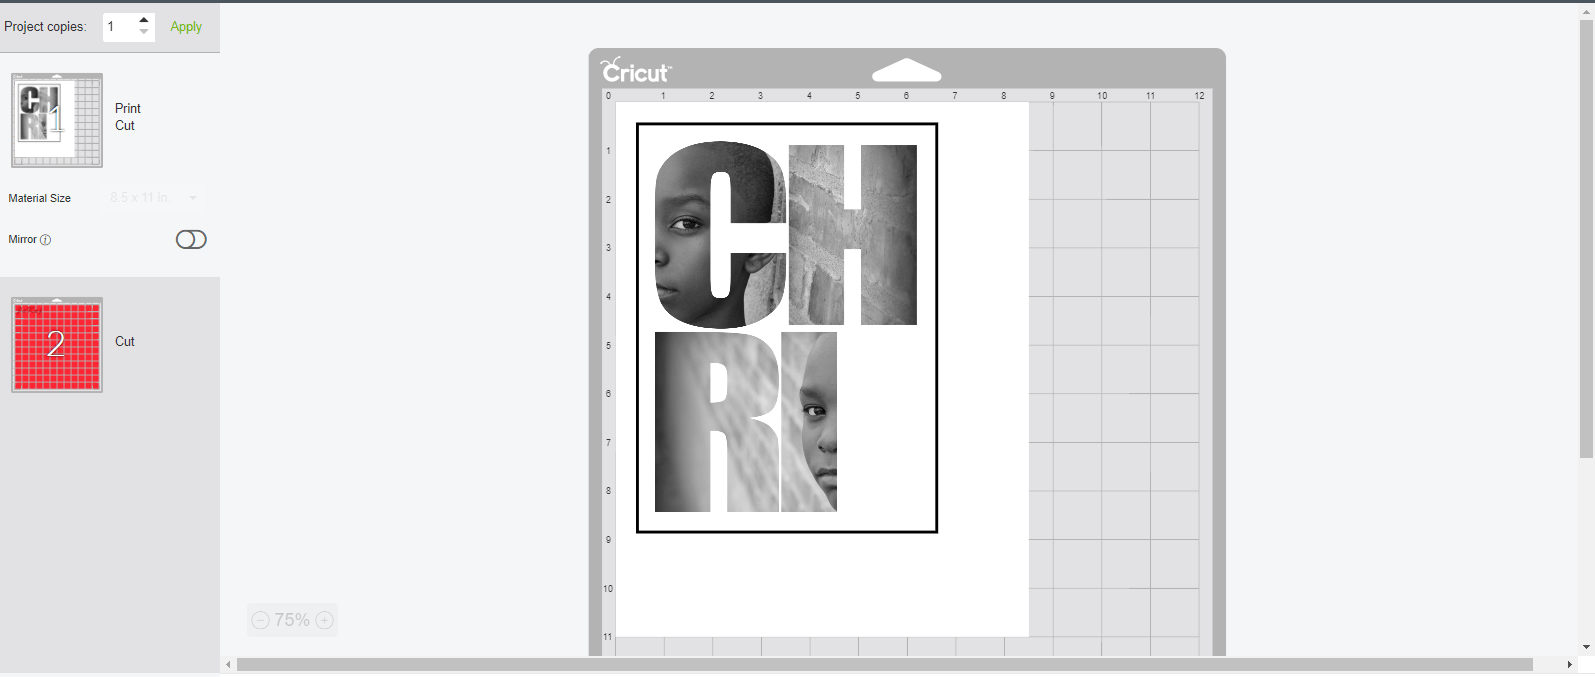 If you are looking to learn how to use the Cricut print and cut feature to cut patterns on Cricut printable iron on then you are in the right place. #cricutmade#cricuttutorials #tutorials #cricut #cricutdesignspace